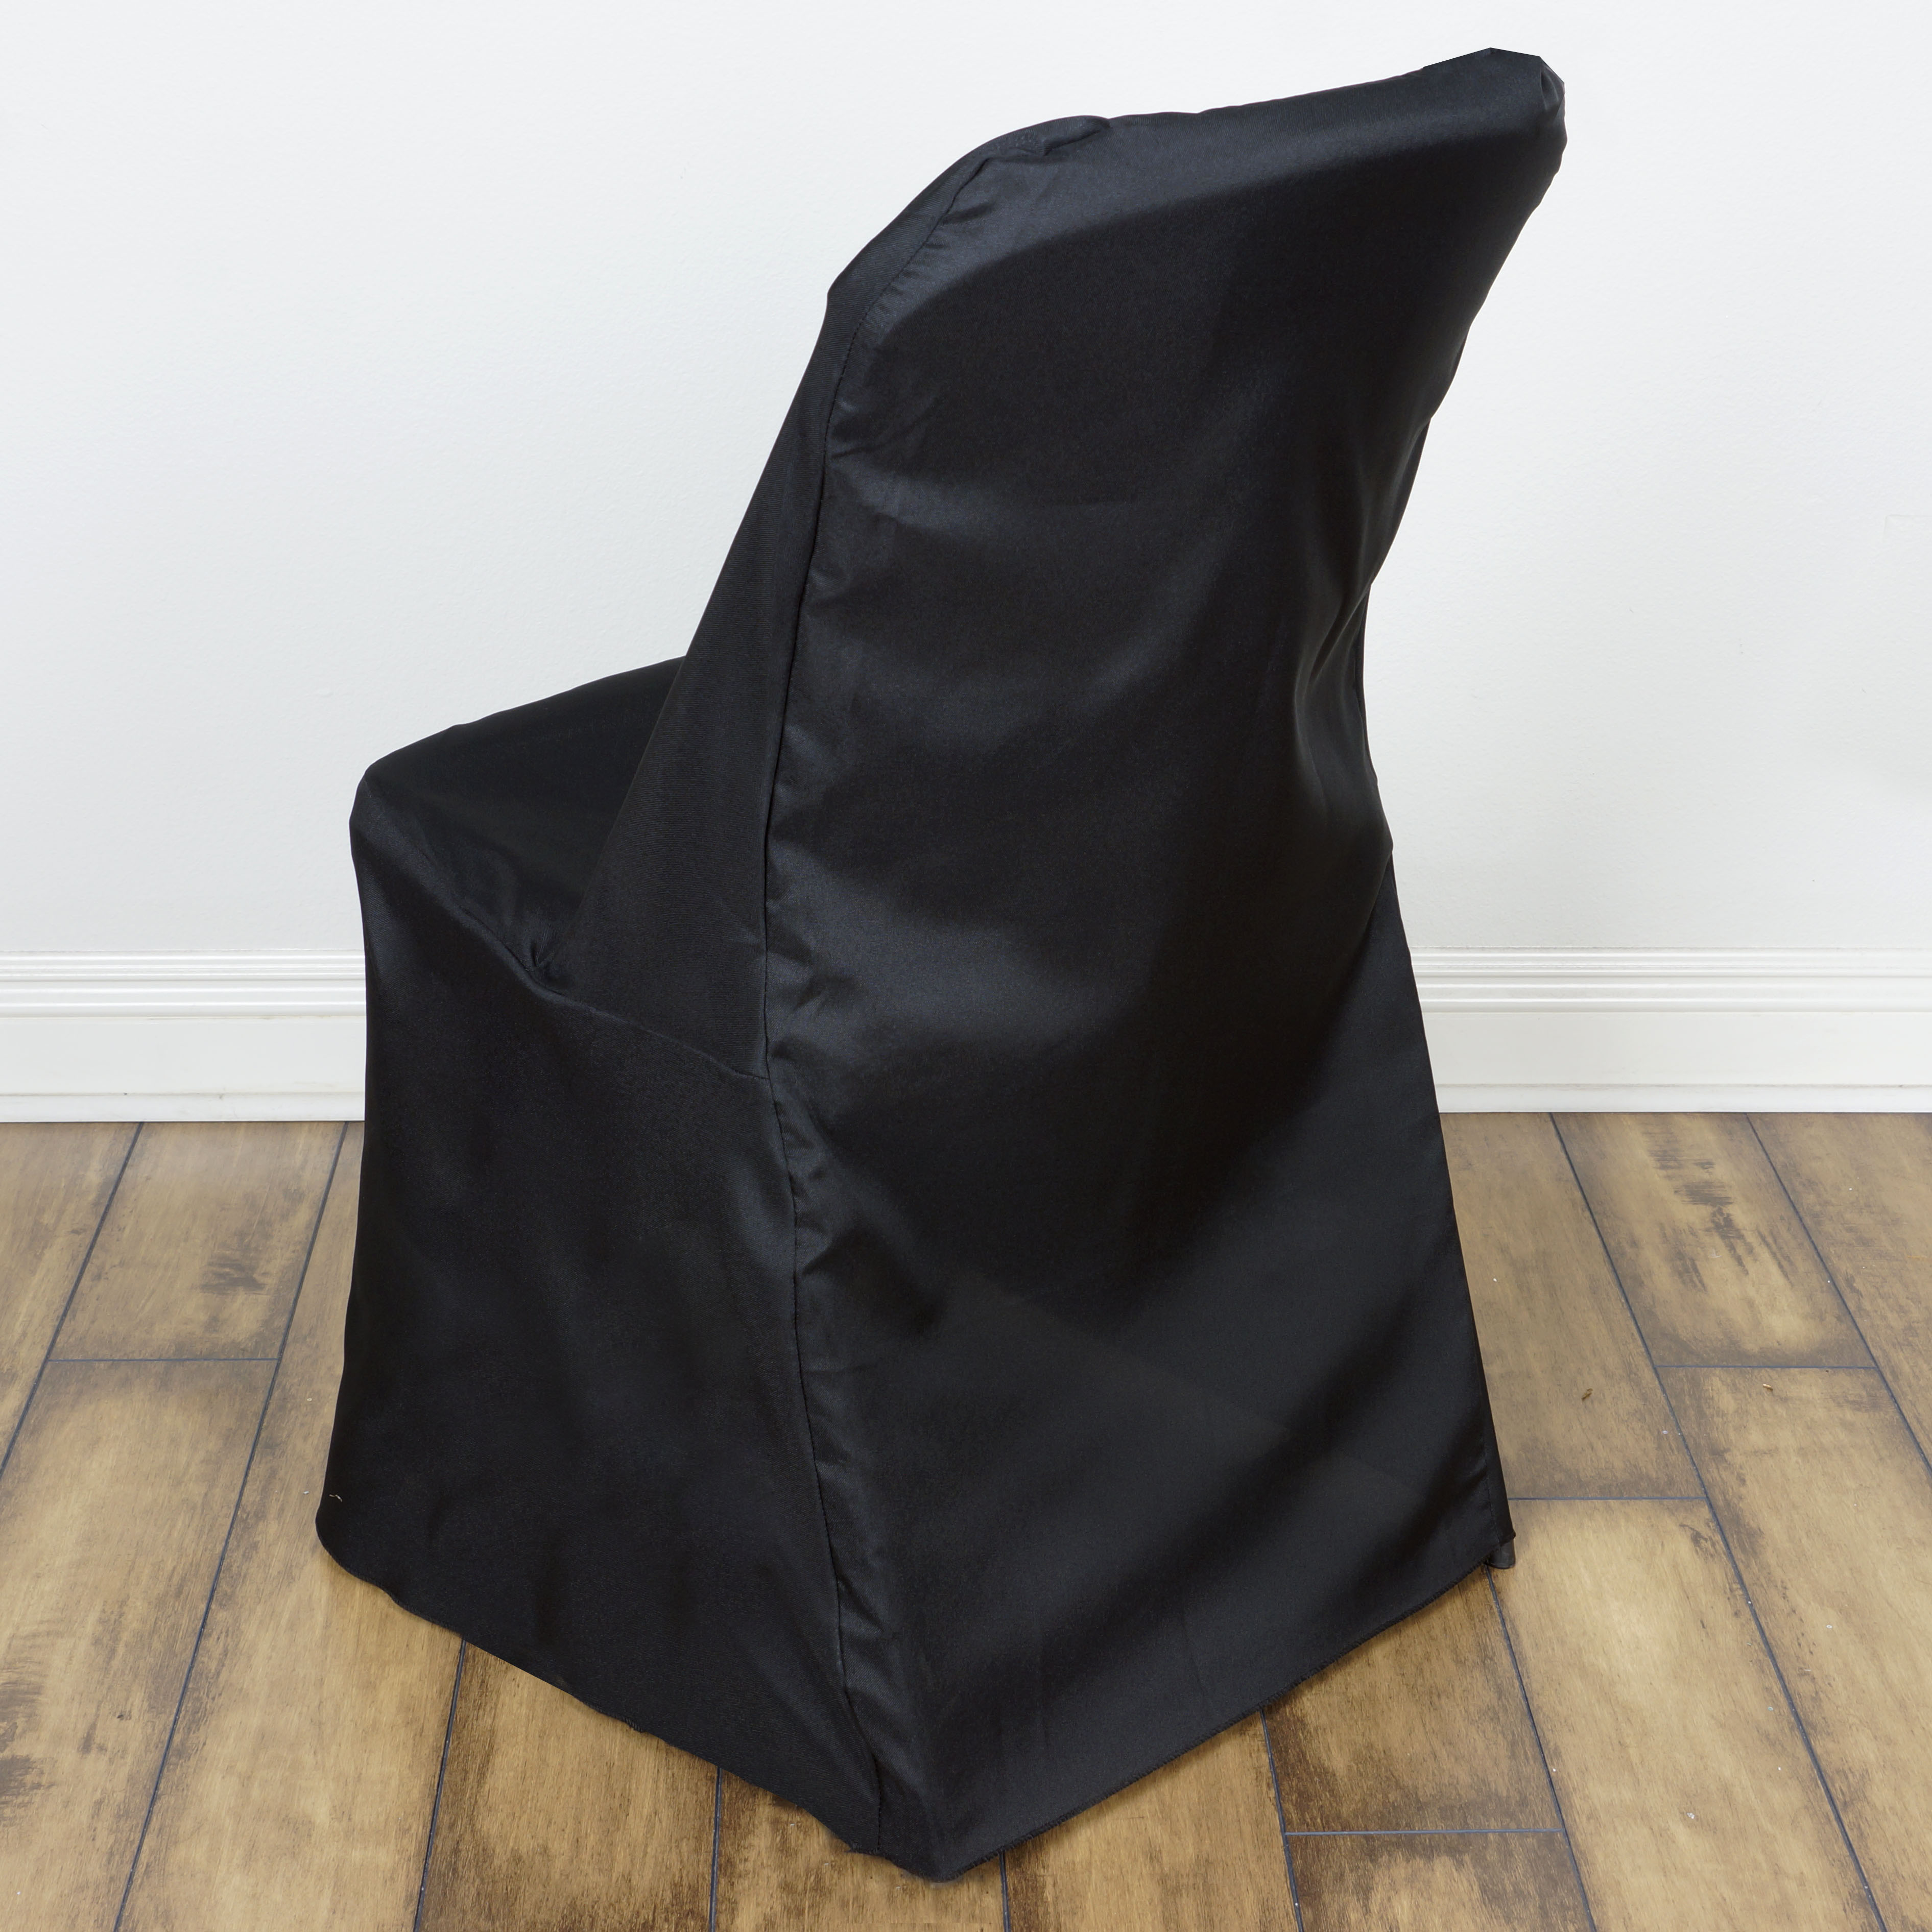 Black LIFETIME FOLDING CHAIR COVER Sample Wedding Party Catering Decorations